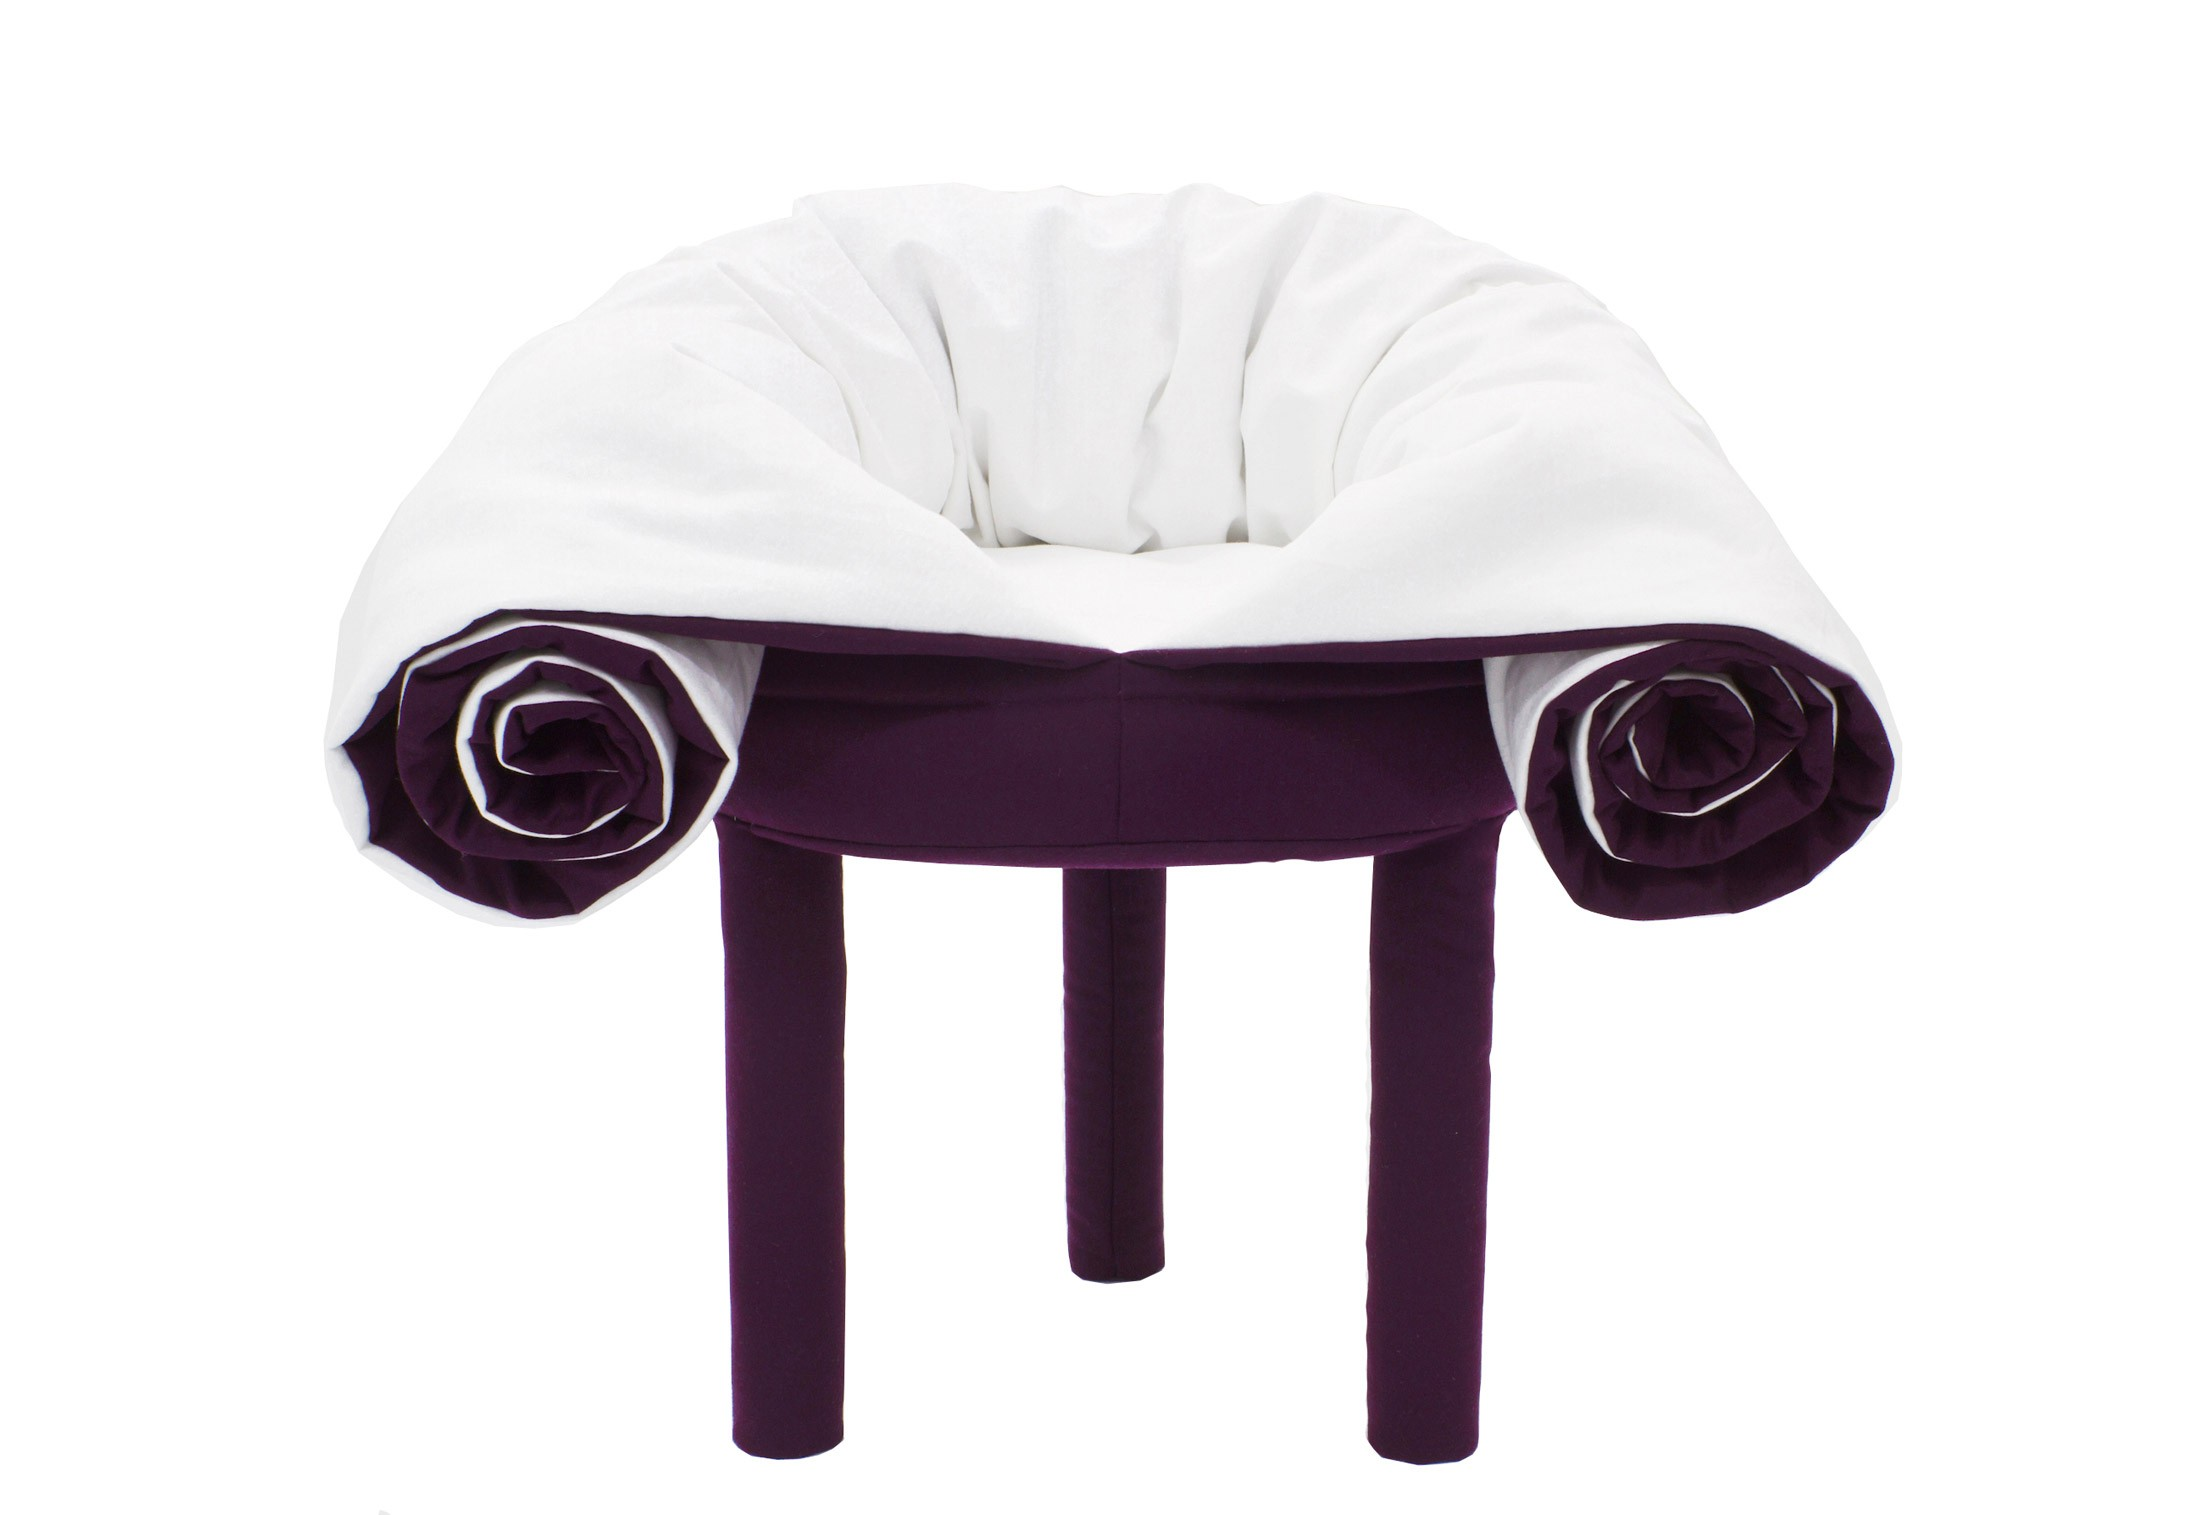 awesome-design-ideas-Collerette-Chair-Footstool-Blanket-in-One-2